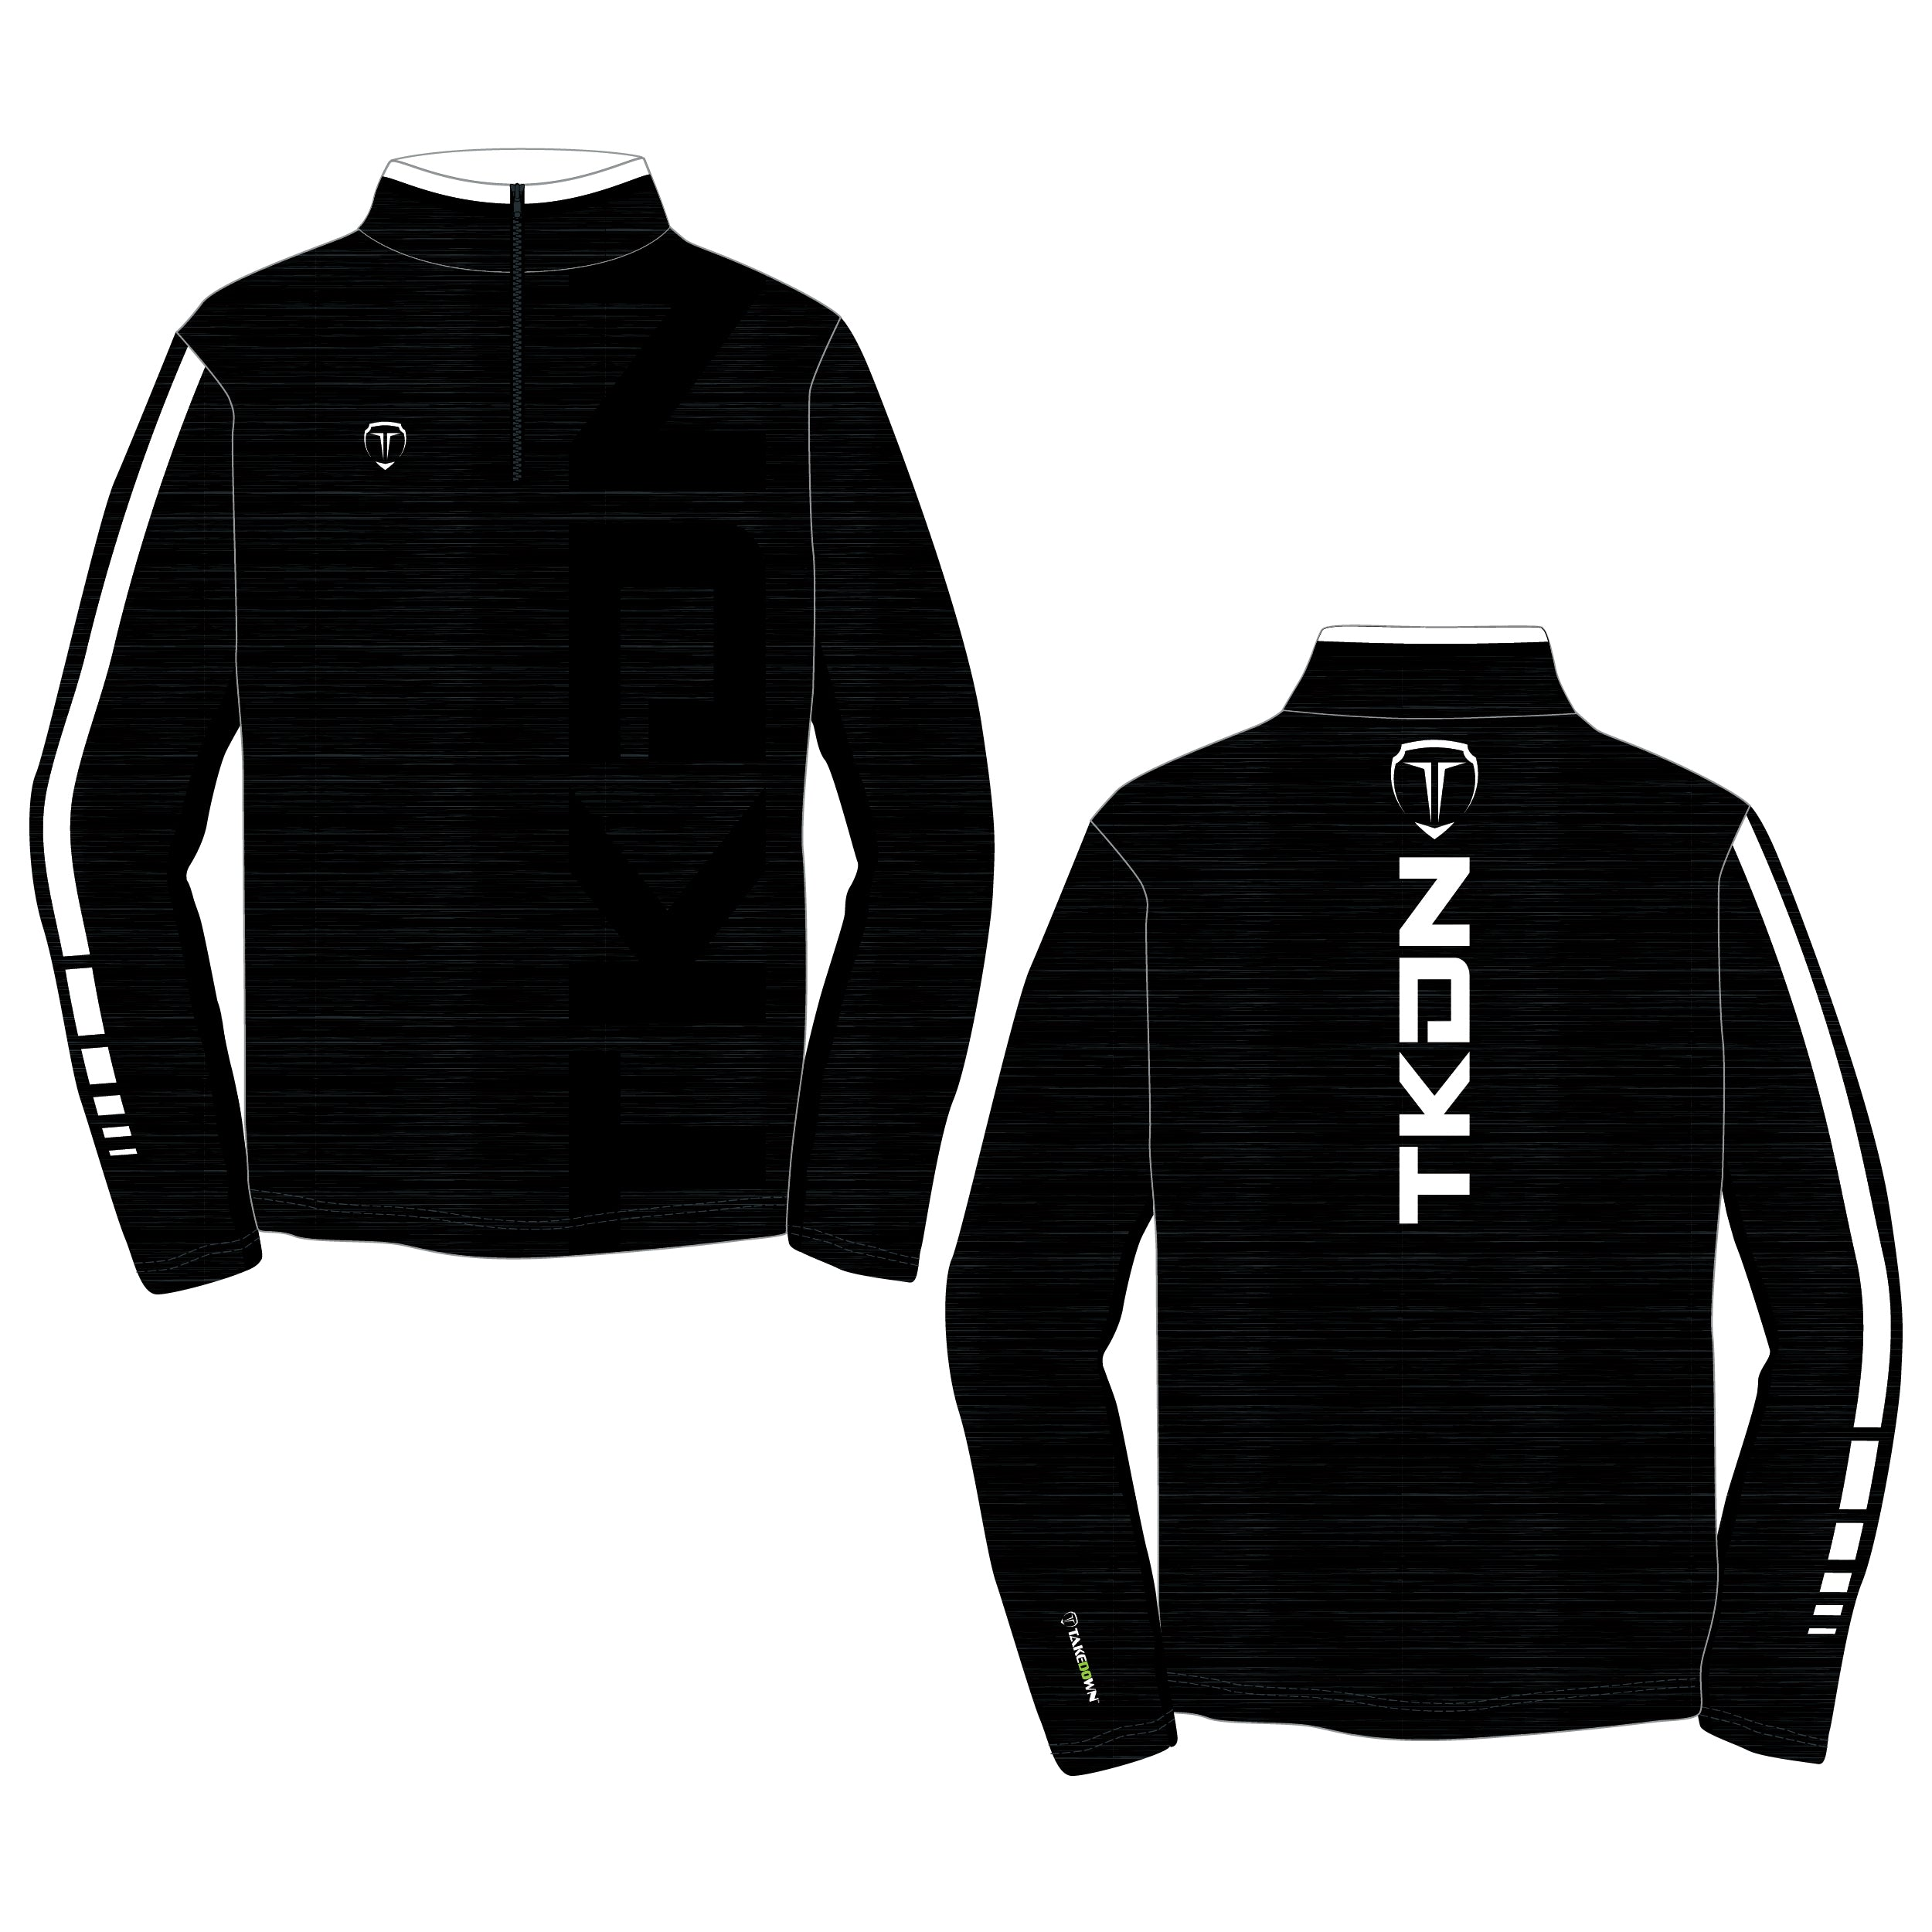 WHIZZER TKDN QUARTER ZIP (MADE TO ORDER - 4 COLOR OPTIONS)